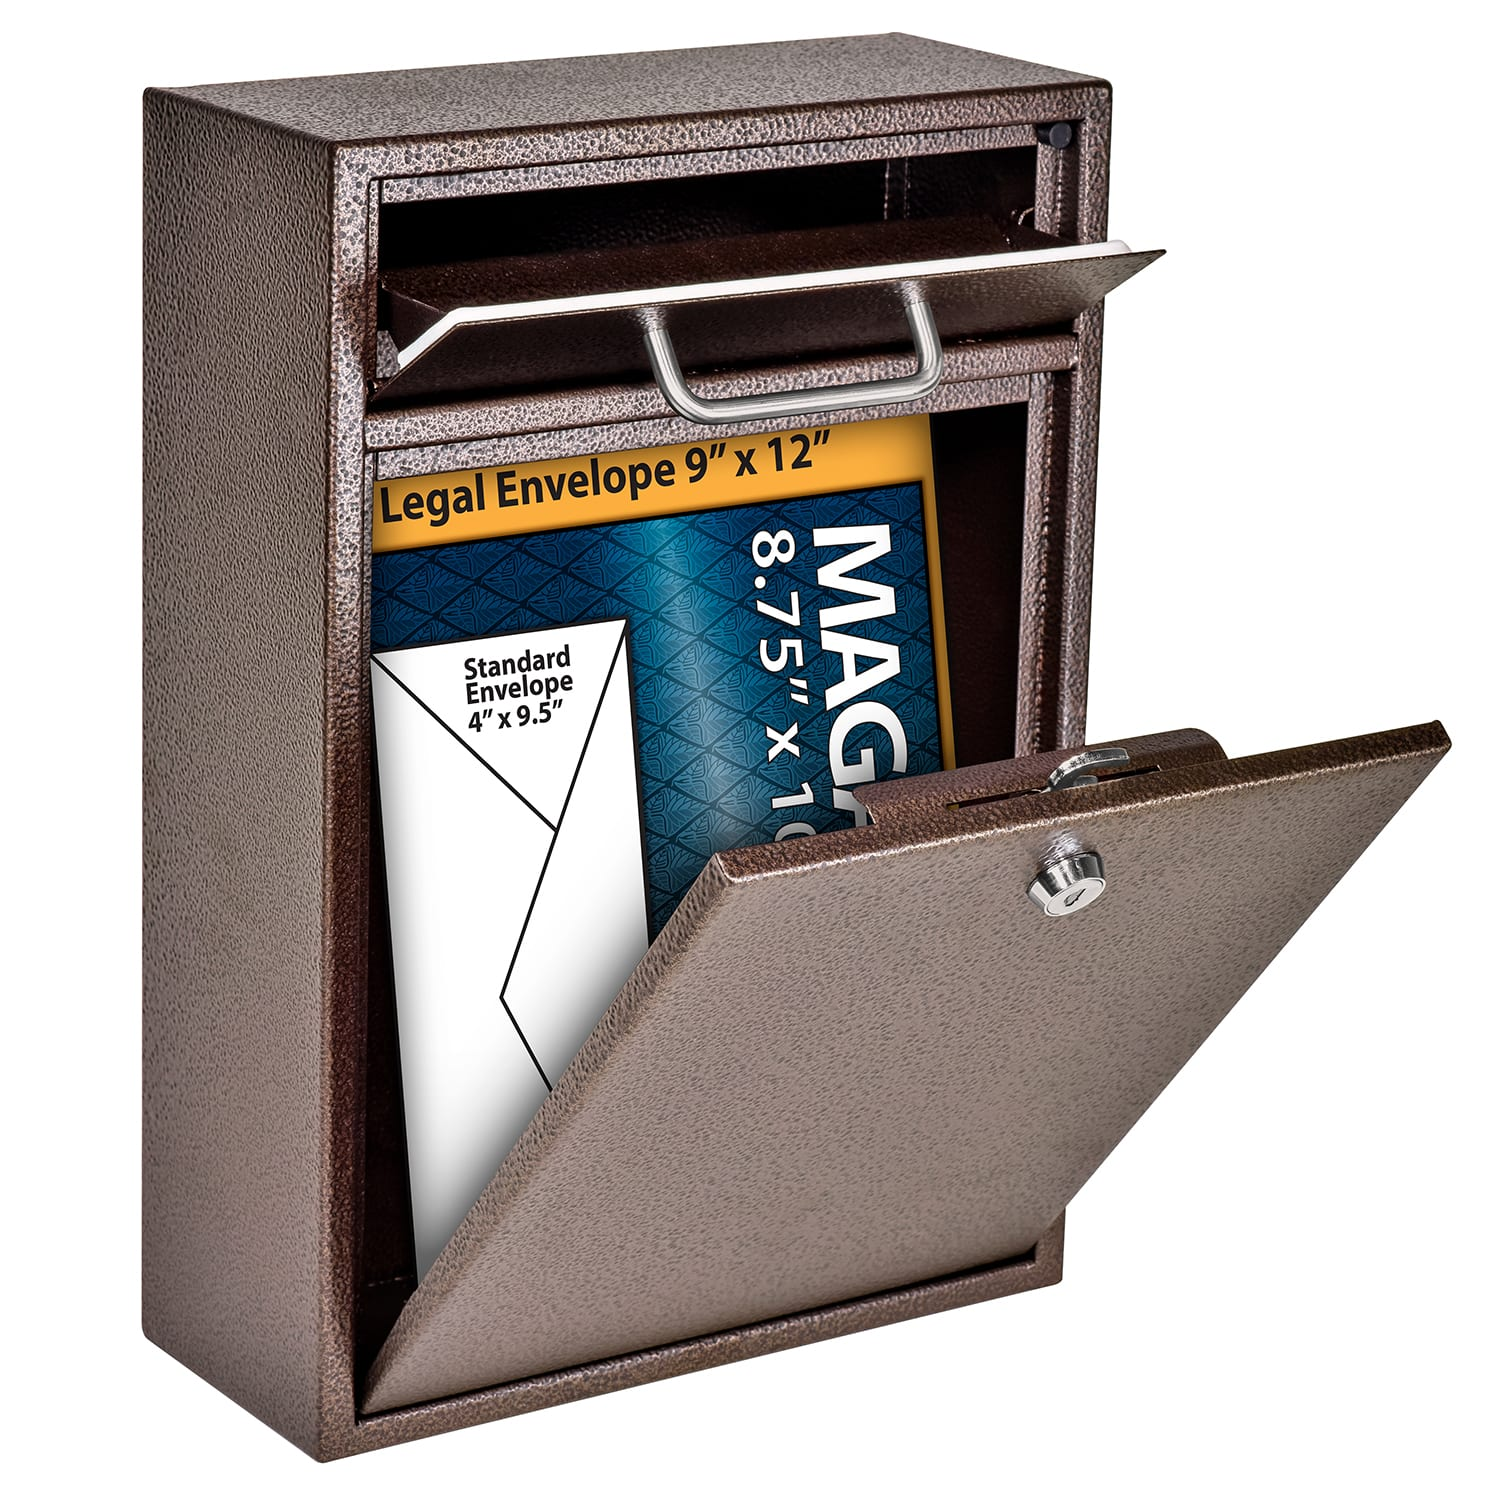 office document sorter lockable security mailbox, secure key drop off box, mail drop box, secure lock and key, postal drop box, lockable post box, office mail, ballot box, suggestion box, key box, dropbox commercial, tough lock, wall mounted key lock box, drop key, latch lock, anti theft, metal office mailbox, post box lock, best wall mount mailbox, most secure front doors, key lock security, steel lock box, wall hanging, wall mounted lock box with slot, Office, Comment, Letter Deposit, night drops, key drops, payment drops, interoffice mail, check box, heavy duty steel mailbox, mailbox security, metal mailbox, apartment mailbox, commercial locks, drop boxes for businesses, tough lock, lock box, small mailbox with lock, best locking mailbox, residential theft proof mailbox, secure mail boxes, best secure mailbox, secure mailbox for home, safety mailbox, high security mailbox,